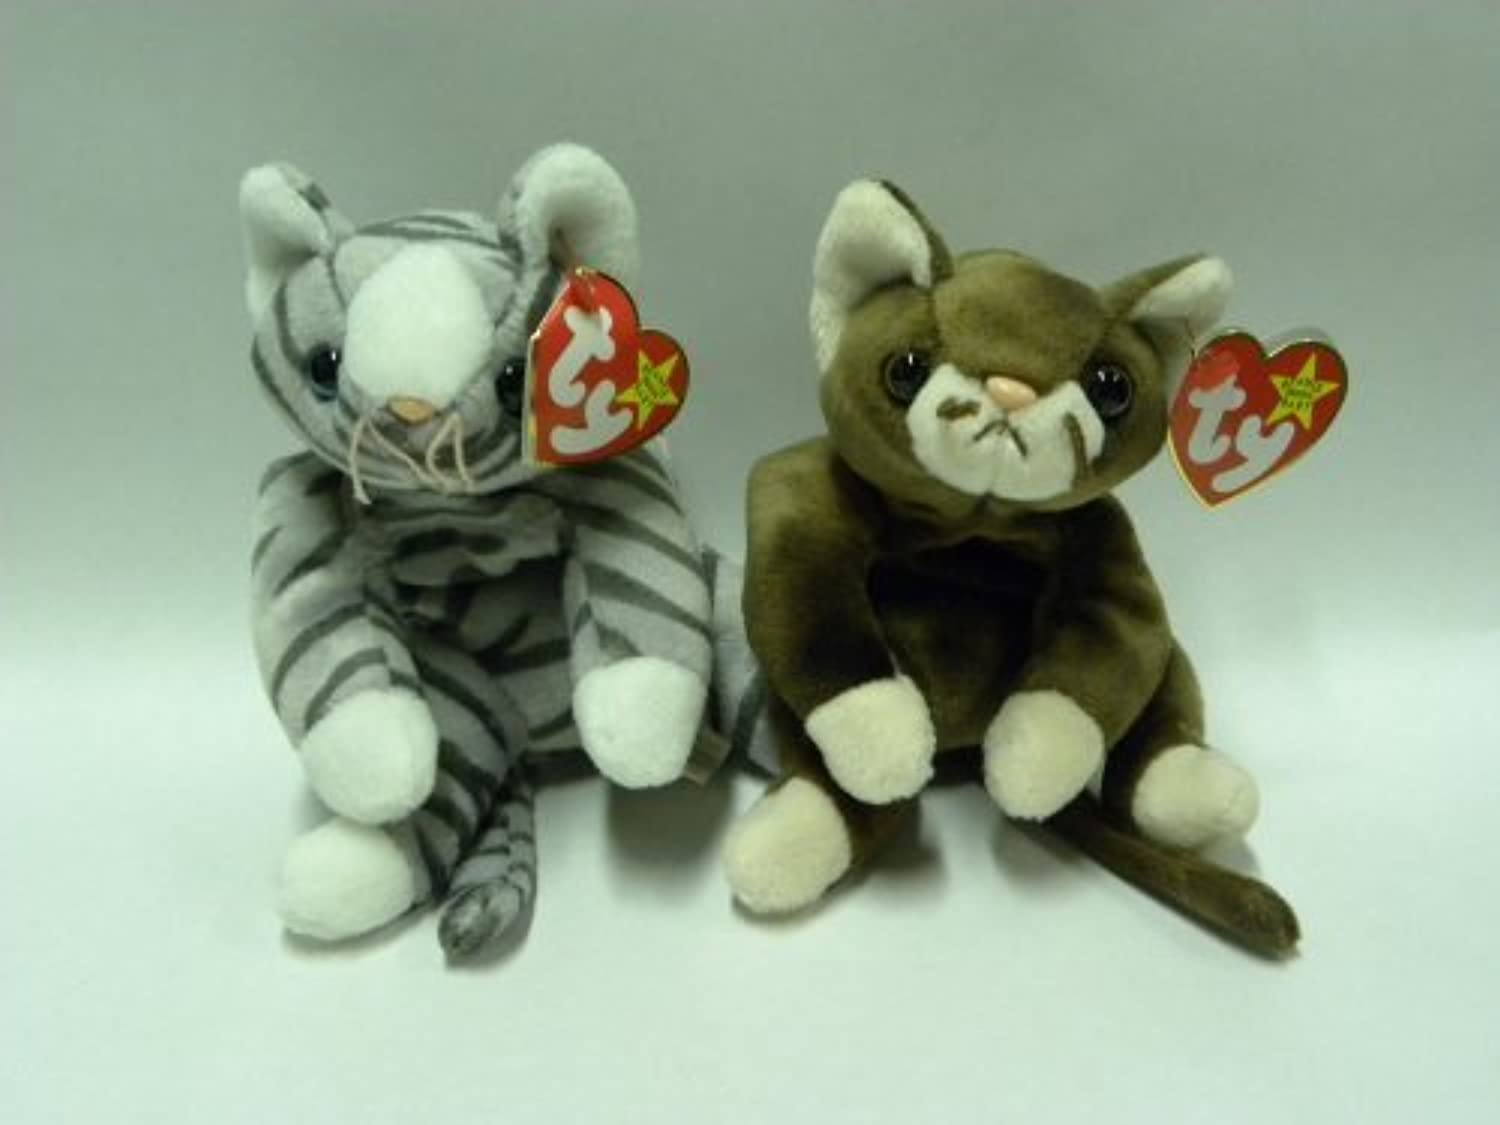 los clientes primero Pounce Pounce Pounce and Prance by Beanie Babies  Sin impuestos